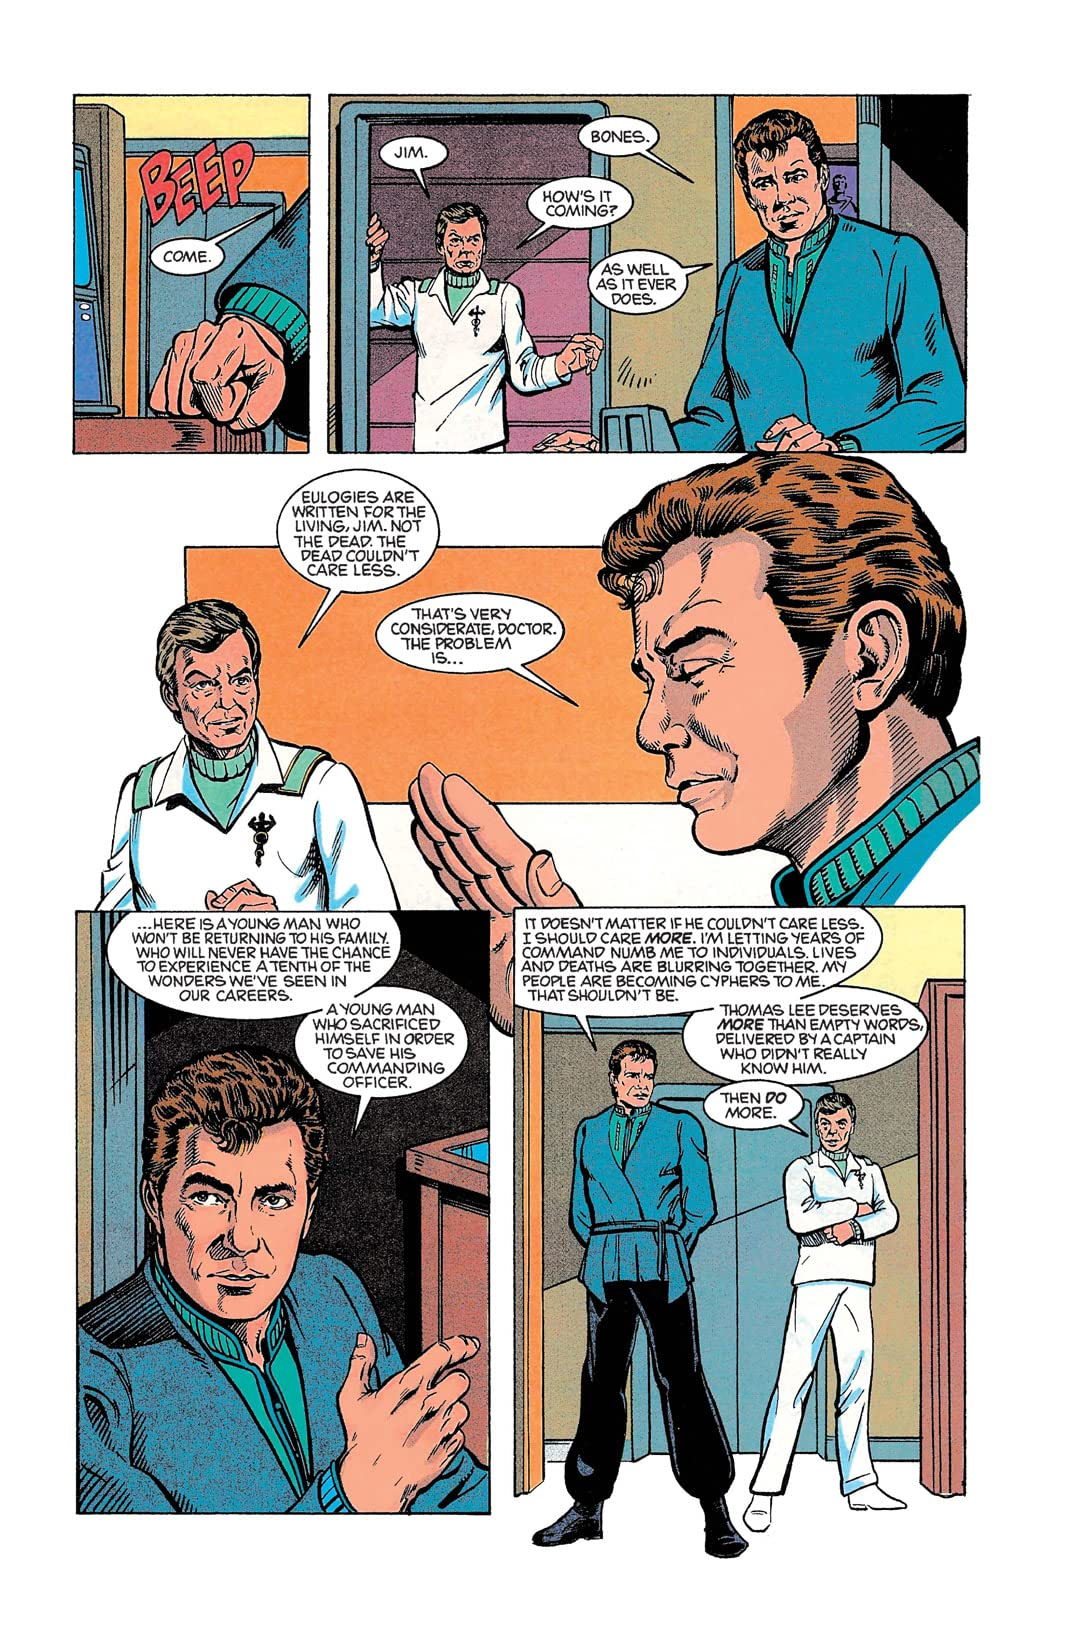 Star Trek Archives: The Best of Peter David #5